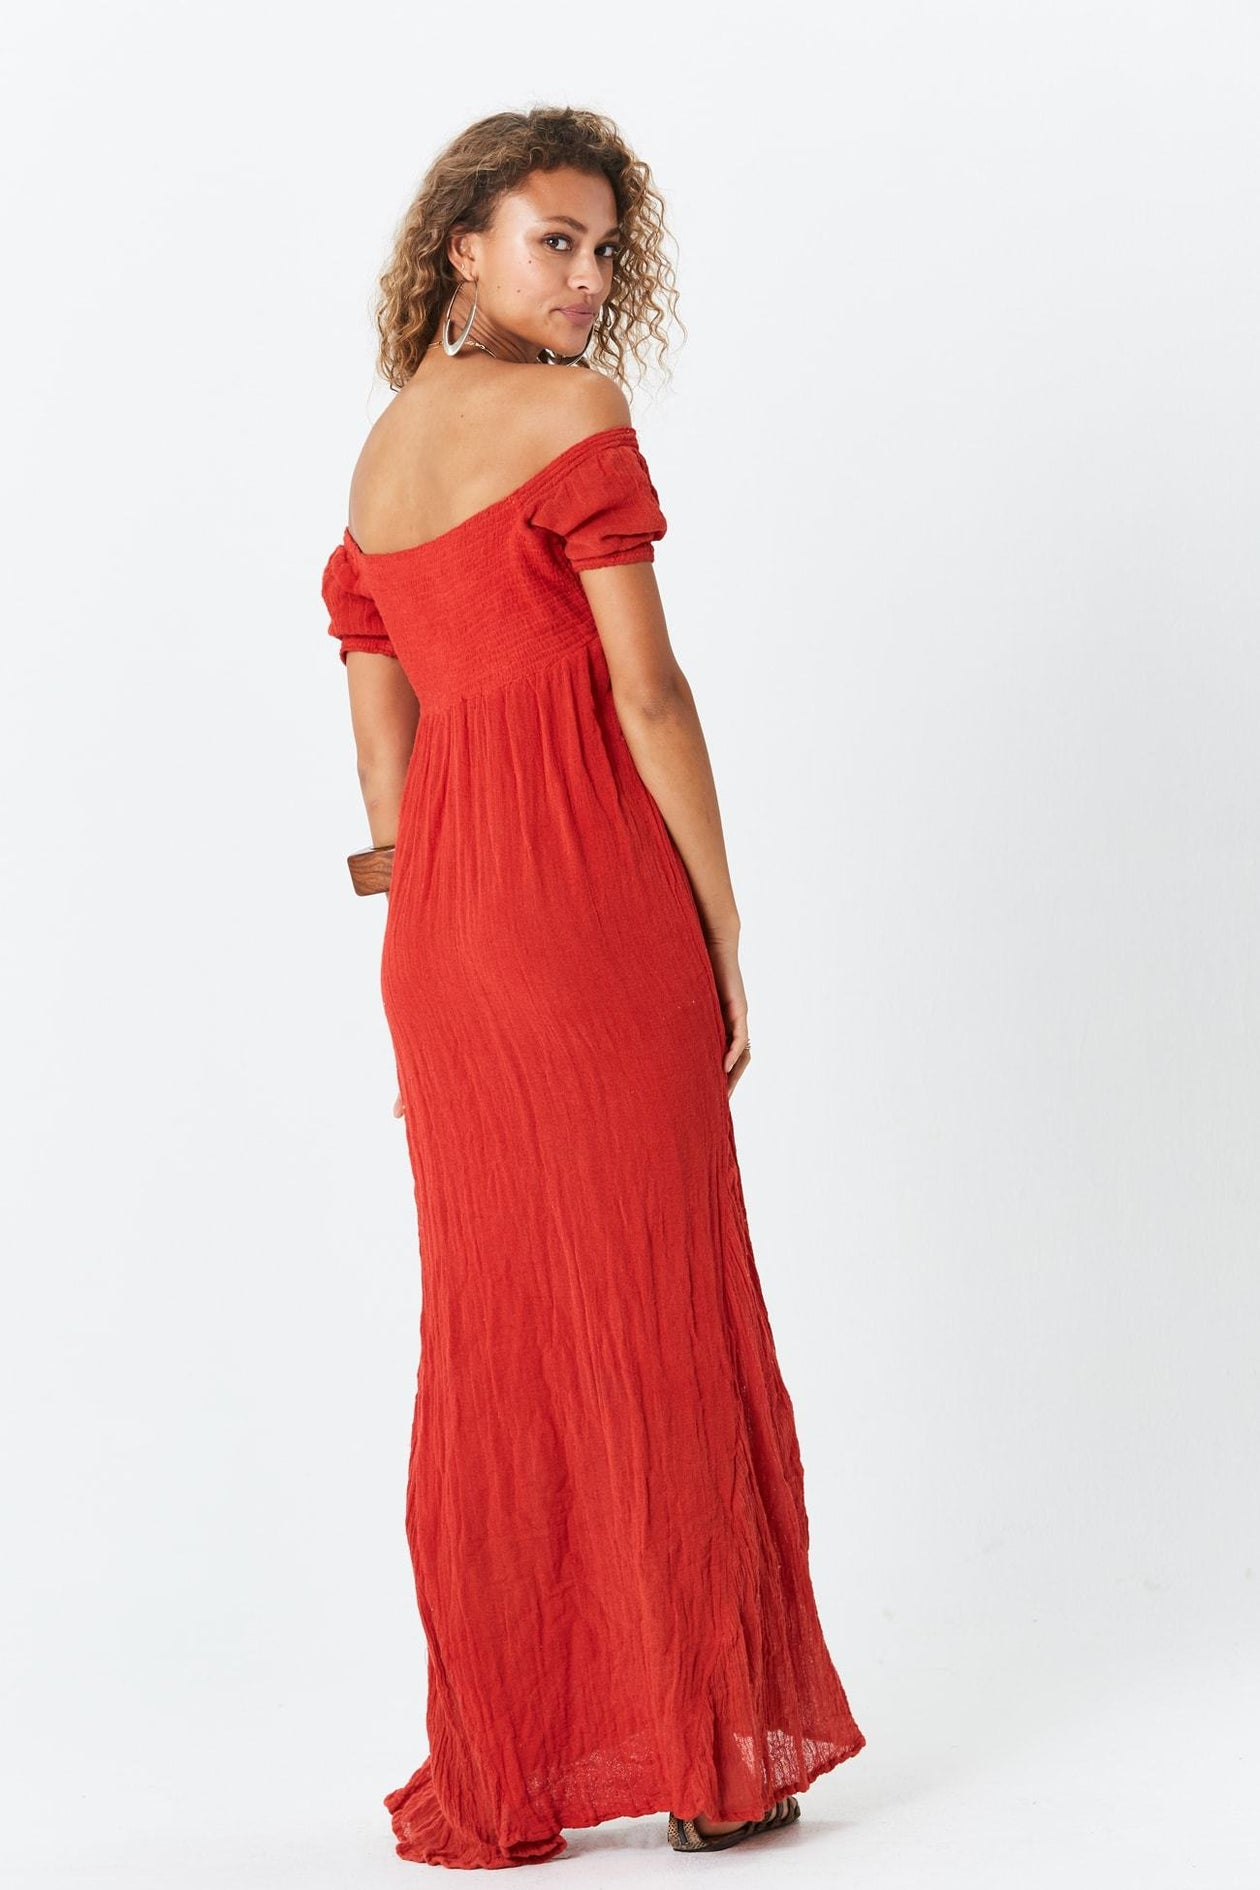 D'Amico Dress in Persimmon by Jen's Pirate Booty | Womens Maxi Dresses